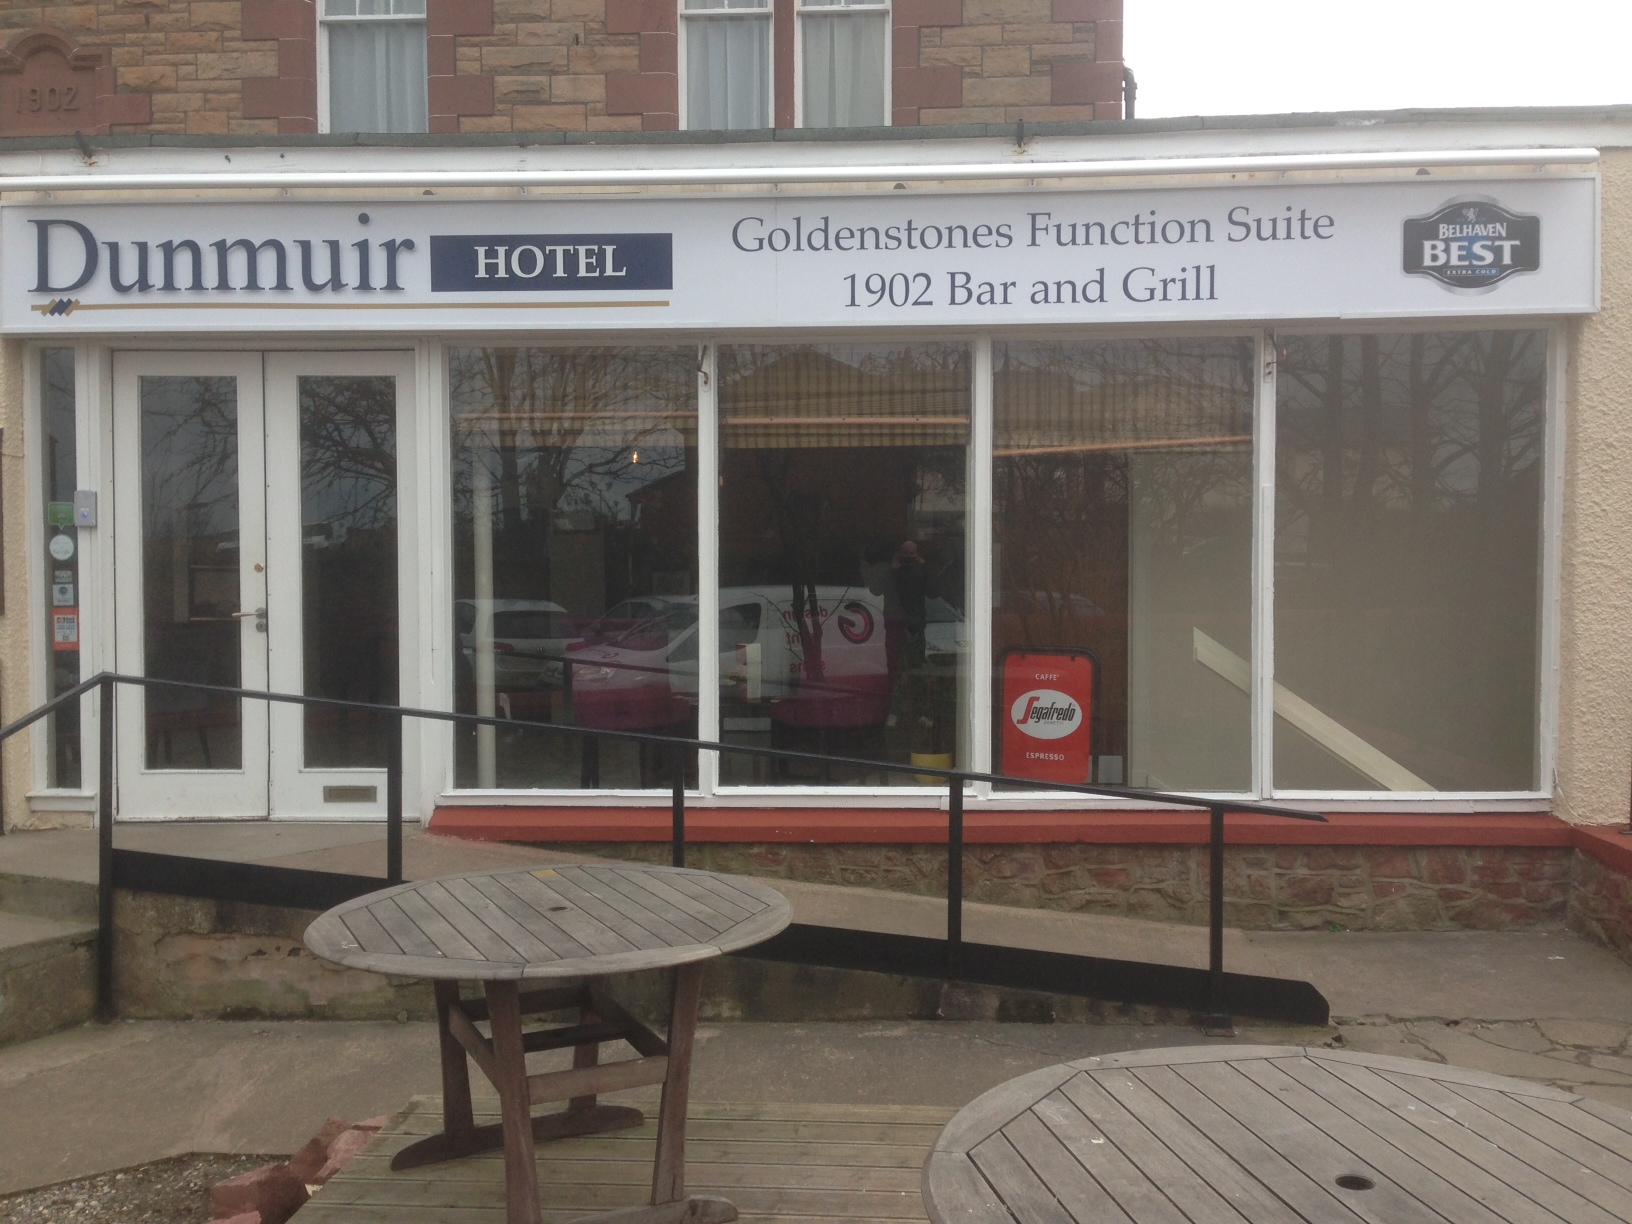 Dunmuir Hotel 2 - Glasgow Creative